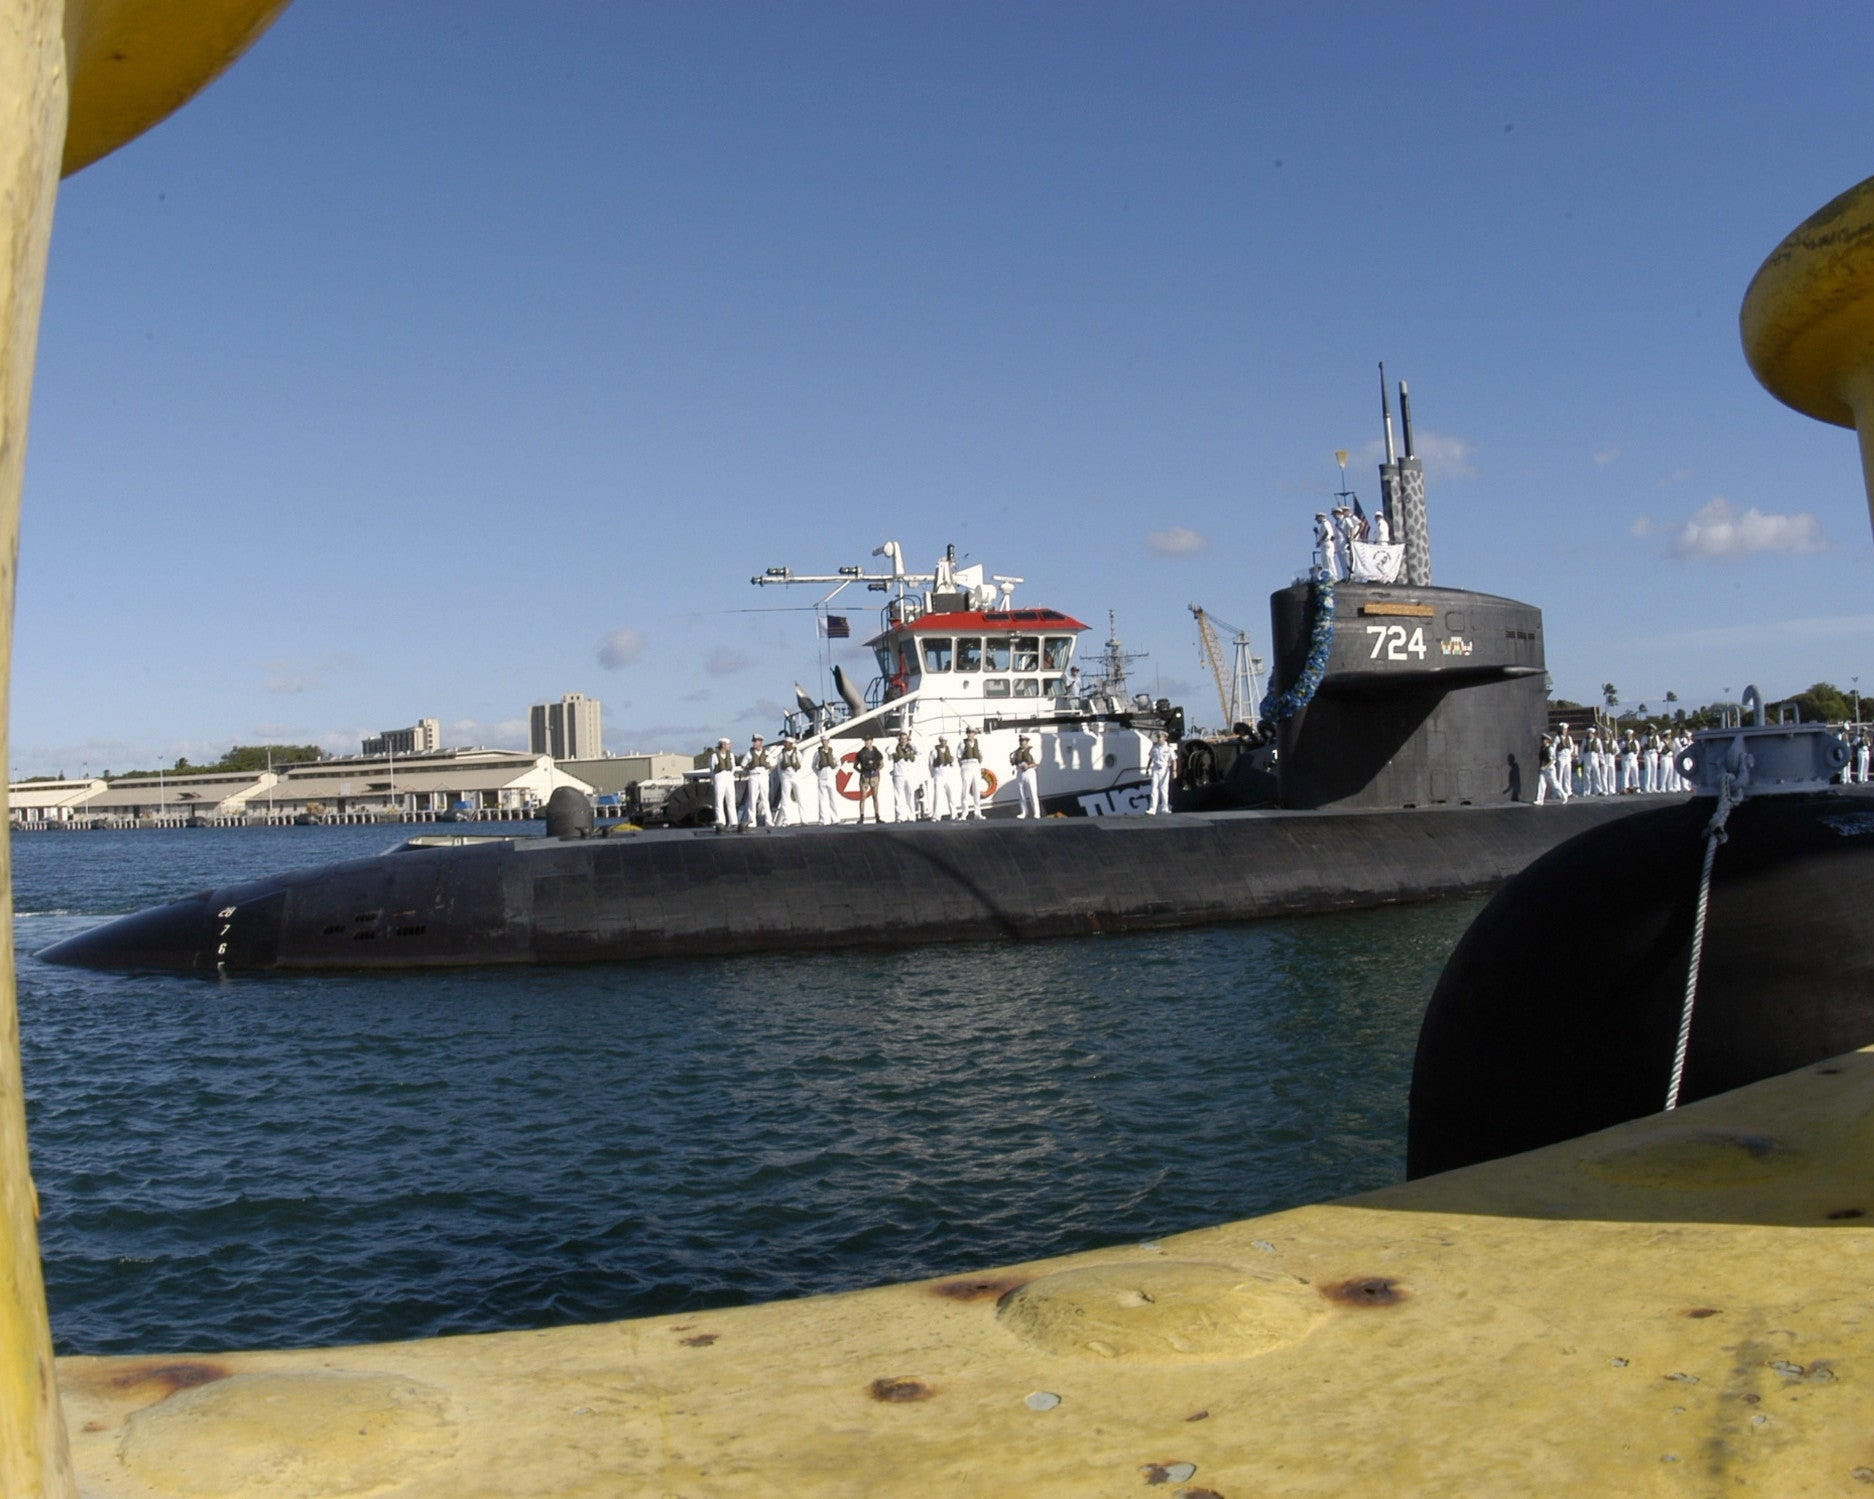 "USS Louisville SSN-724 Pearl Harbor, Hawaii (May 13, 2003) - 8 x 10"" Photograph"